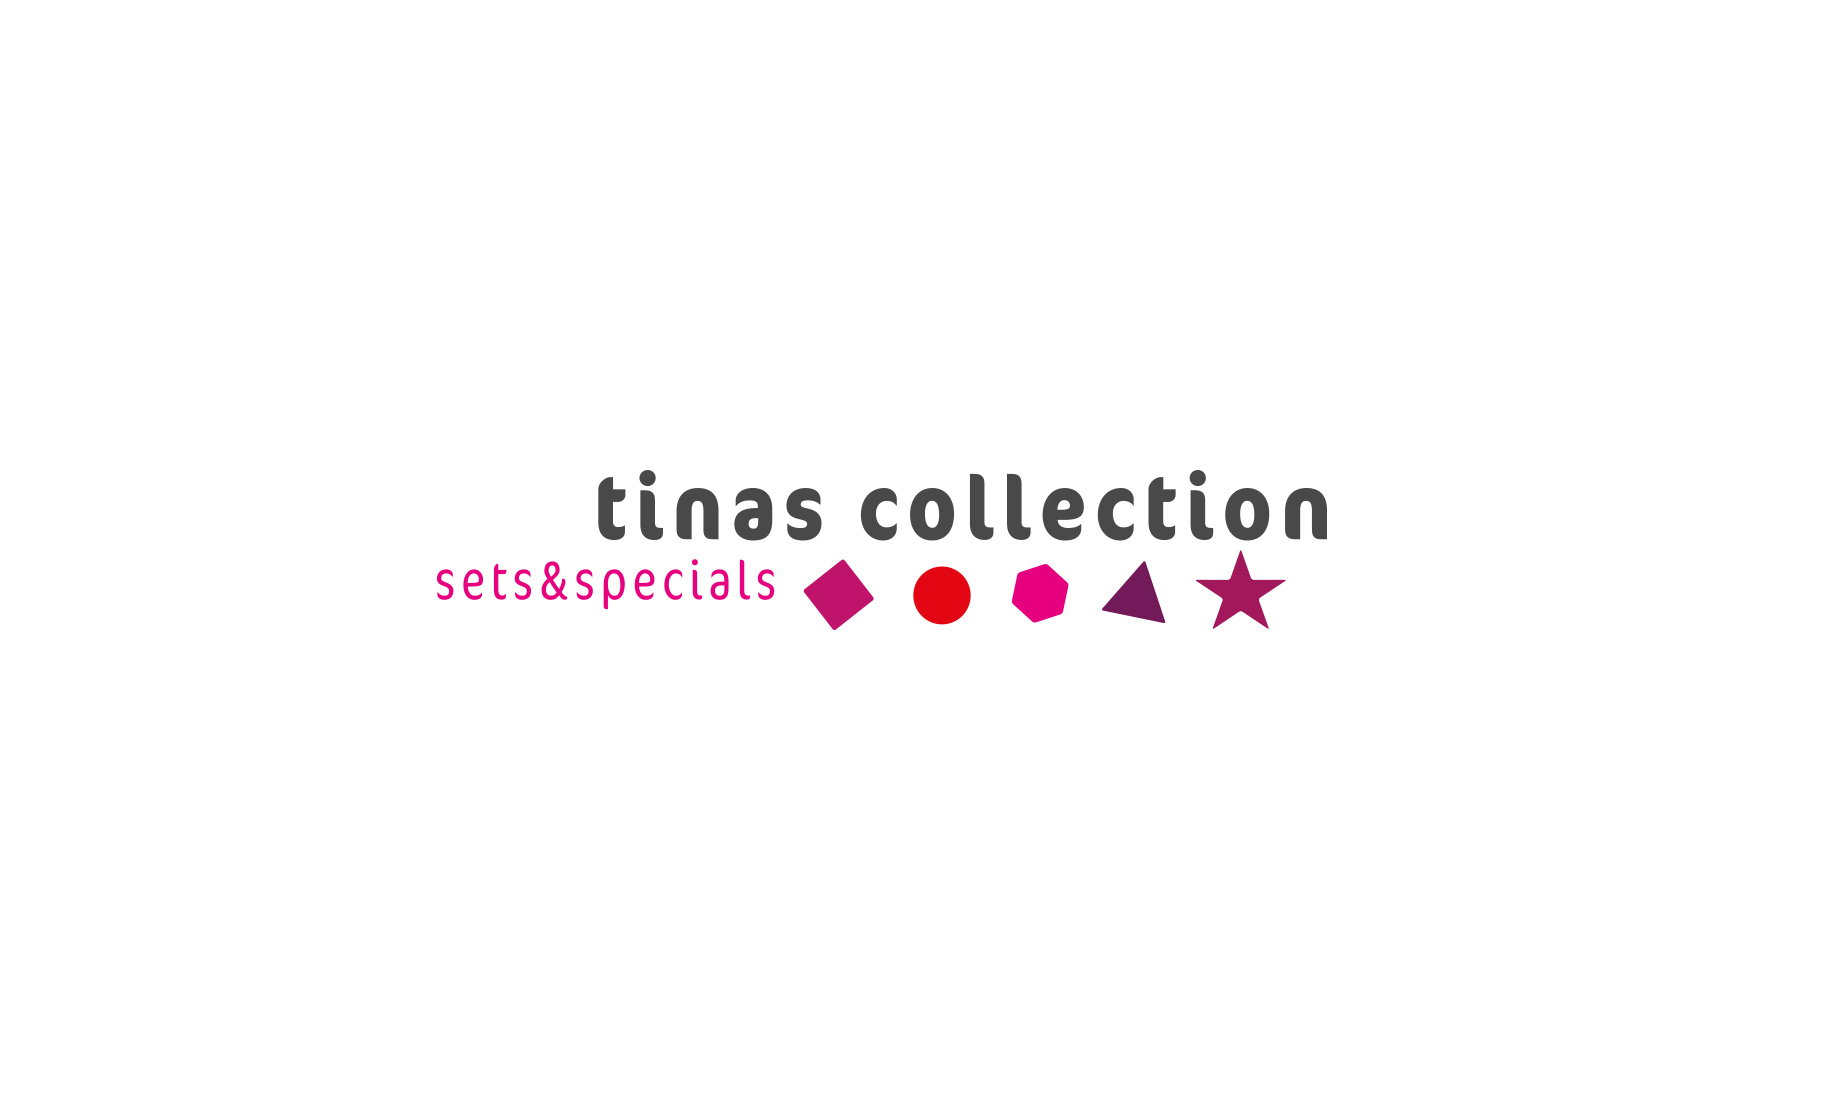 tinas collection - Logo-Entwicklung inklusive neuem Corporate Design